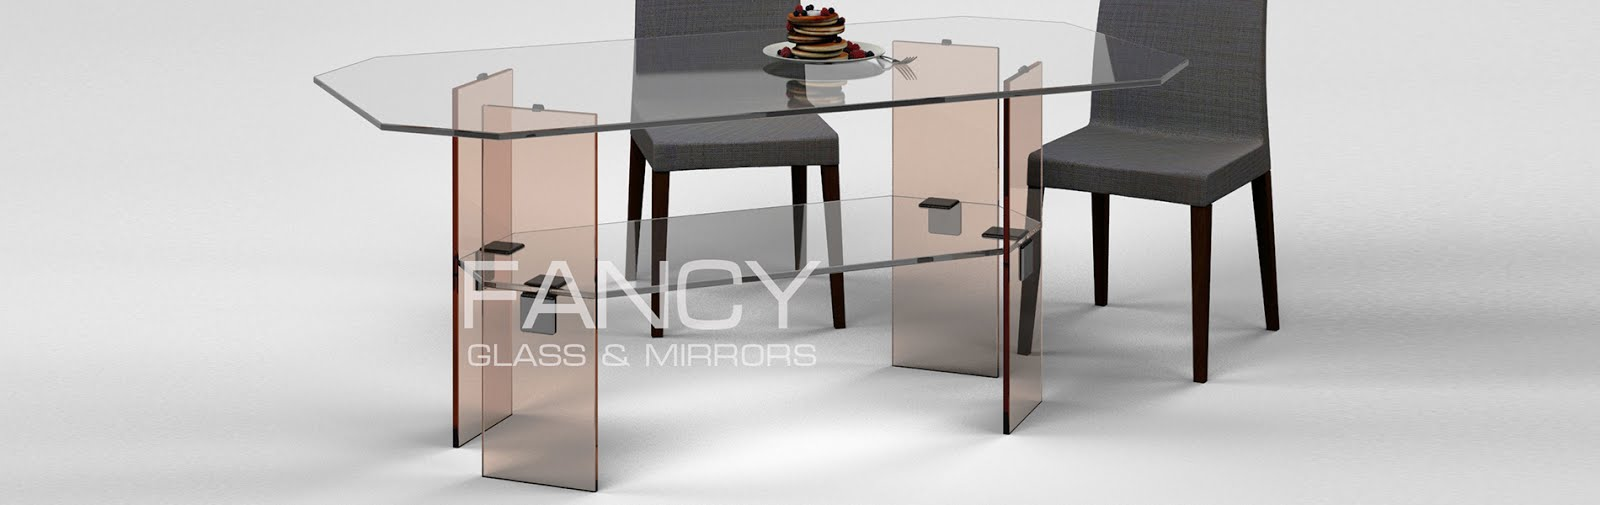 Rectangular glass dining table with shelf